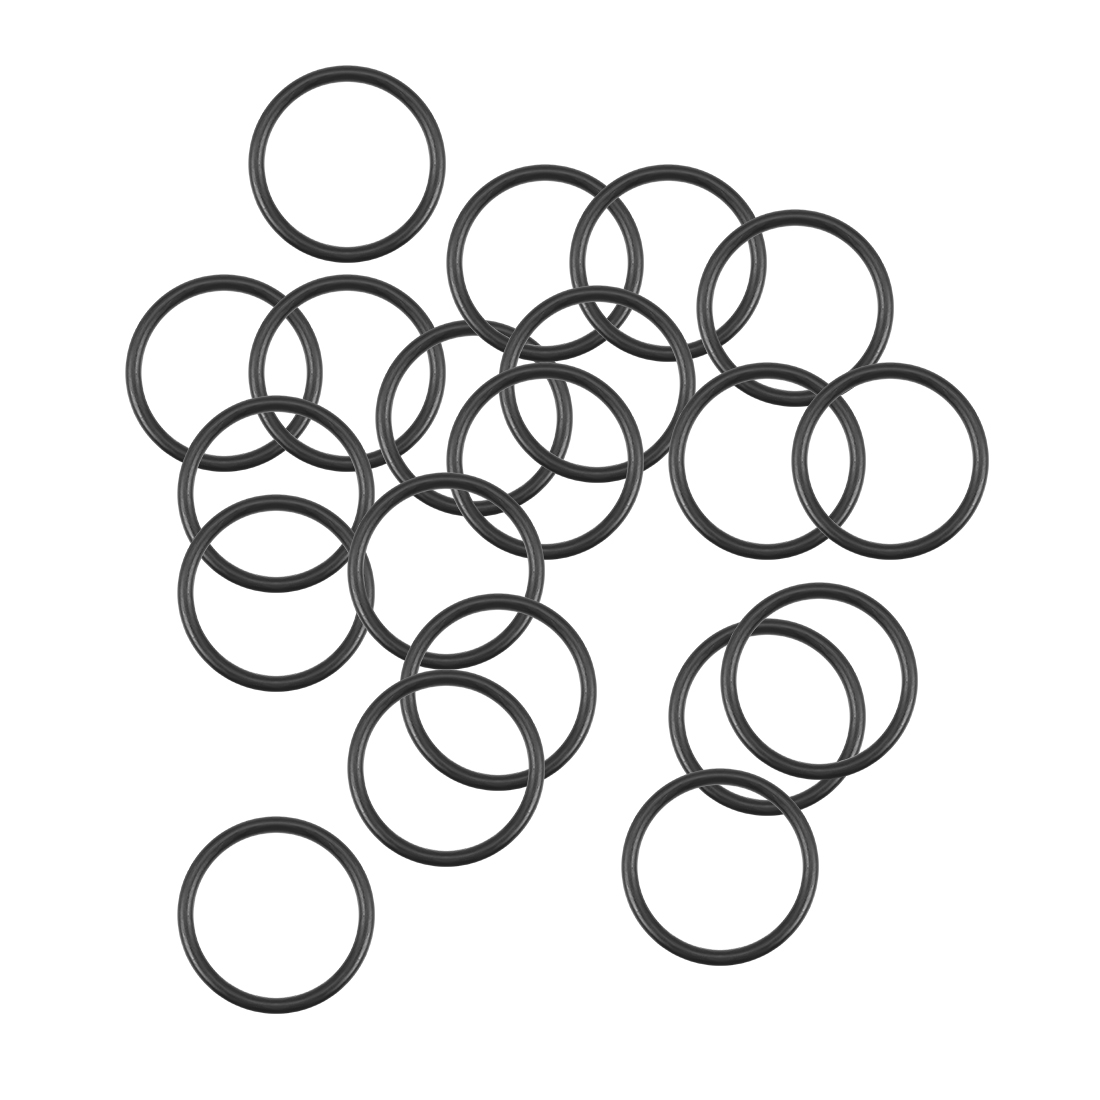 O-Rings Nitrile Rubber 14.8mm x 18.4mm x 1.8mm Round Seal Gasket 20 Pcs